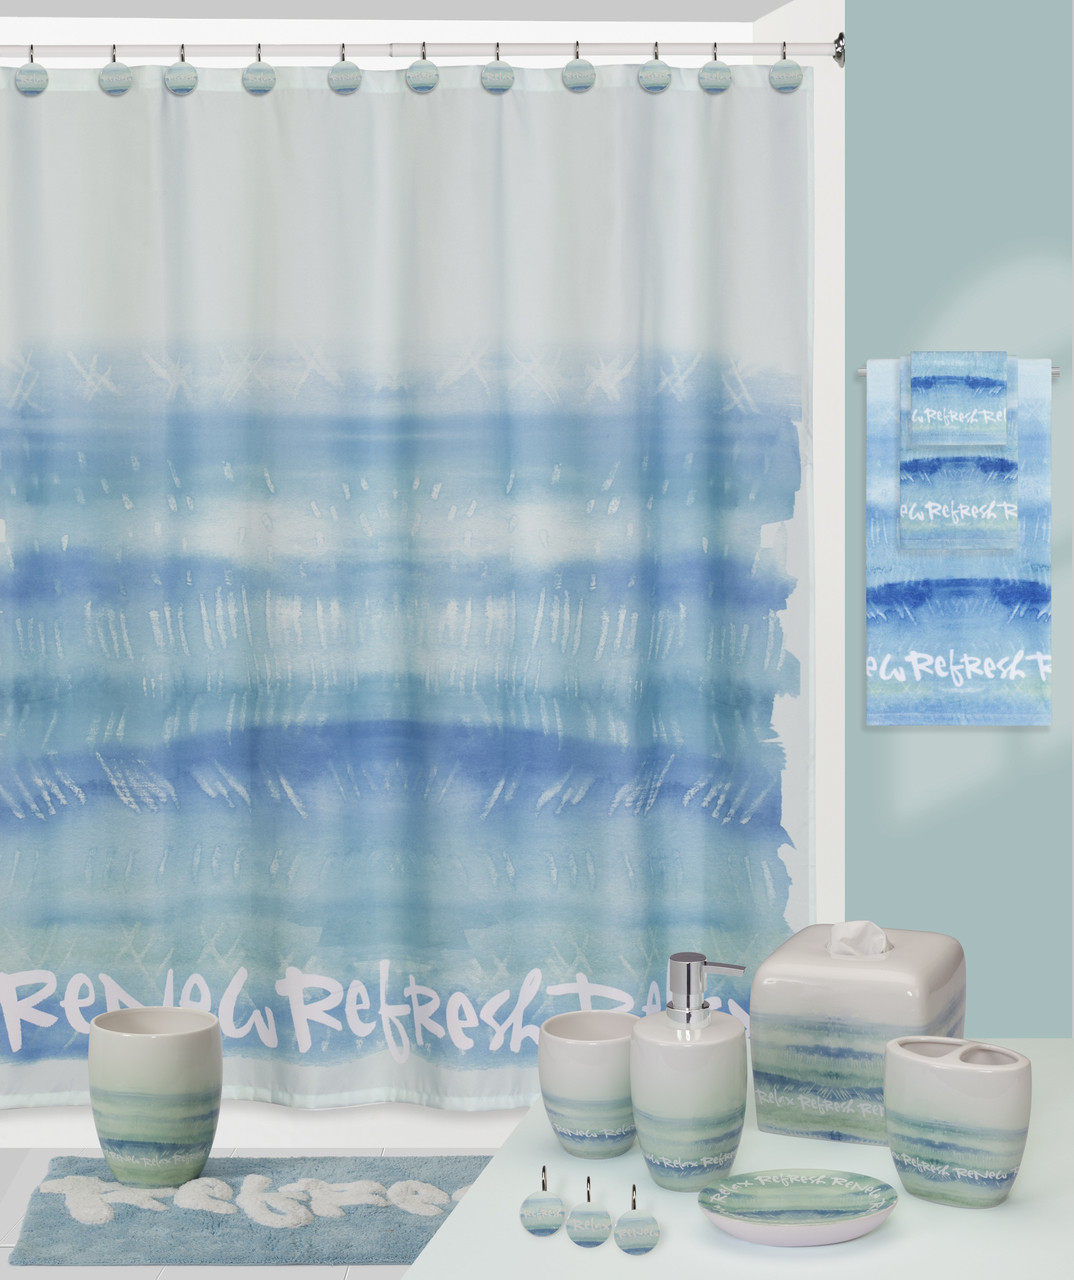 Splash relax shower curtain and bathroom accessories - Bathroom shower curtains and accessories ...